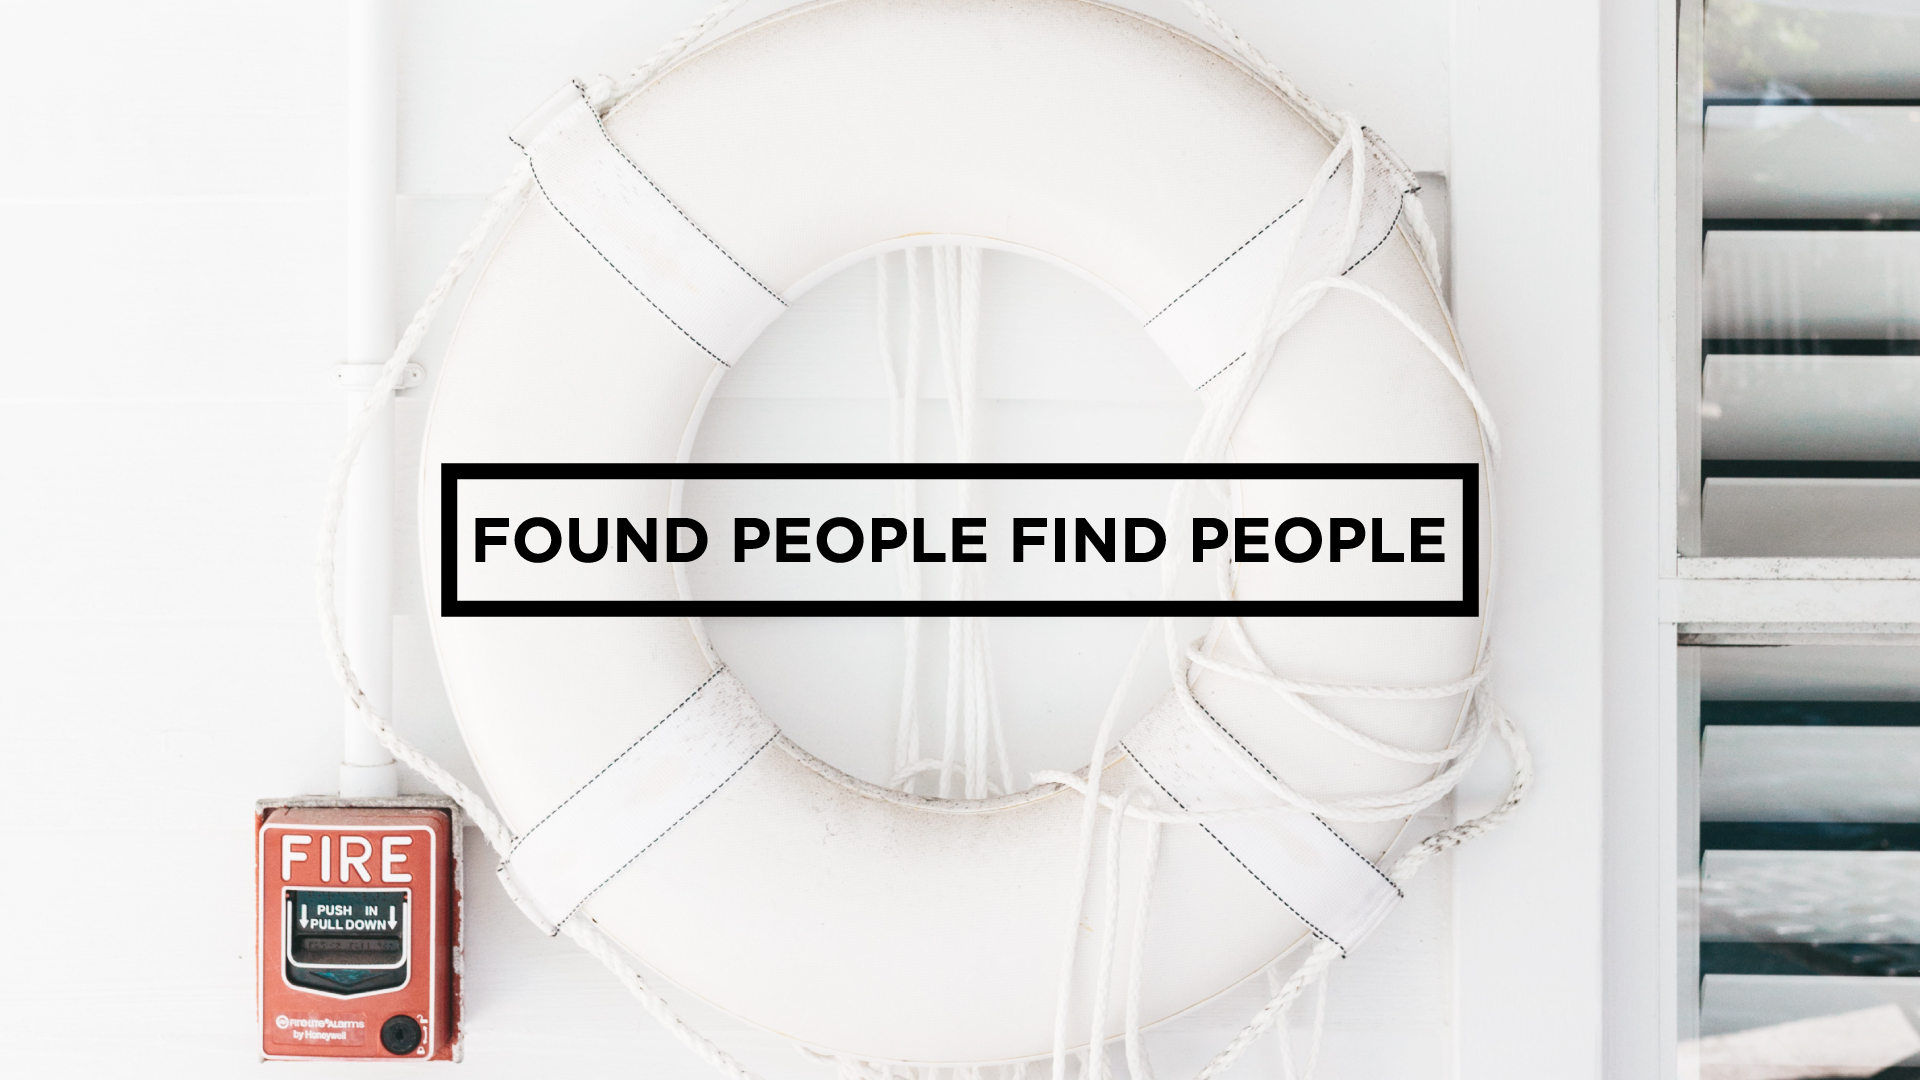 7. Found People Find People - As Jesus has found us, he calls us to enter into His mission of seeking and saving the lost. We want to do our part sharing the Gospel with our lives and with our words that many may come to know Him.  You can listen more to how we approach this value here.